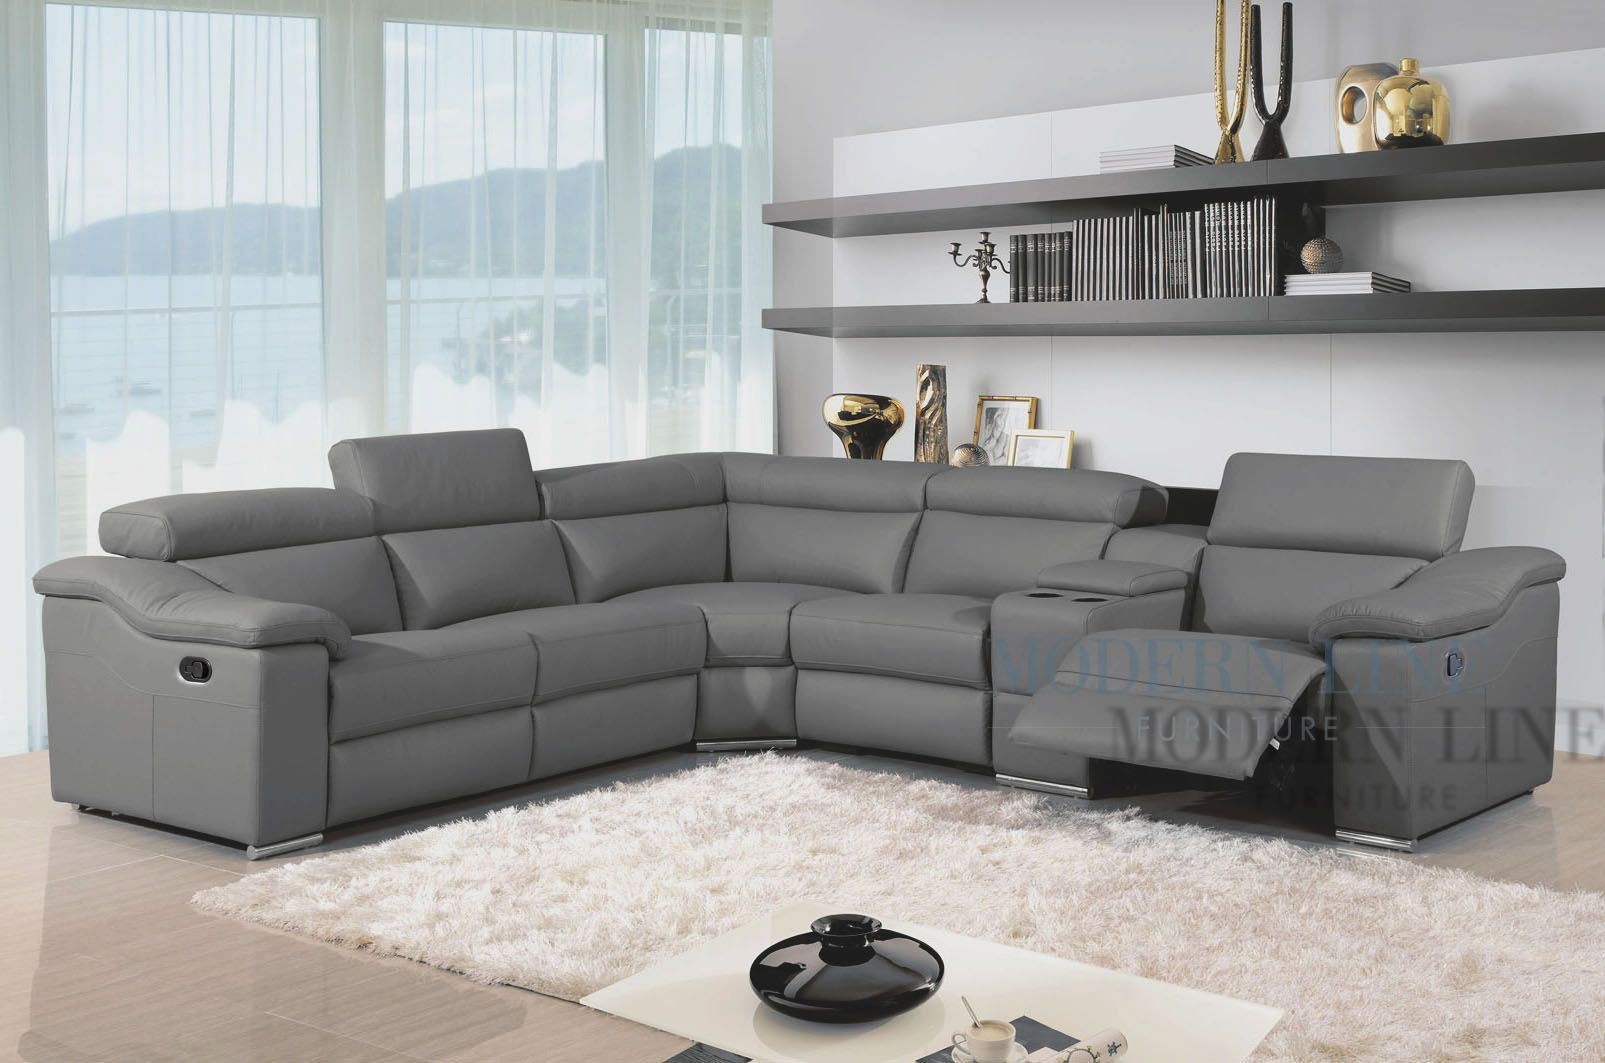 modern leather reclining sectional grey leather modern sectional  - modern leather reclining sectional grey leather modern sectional